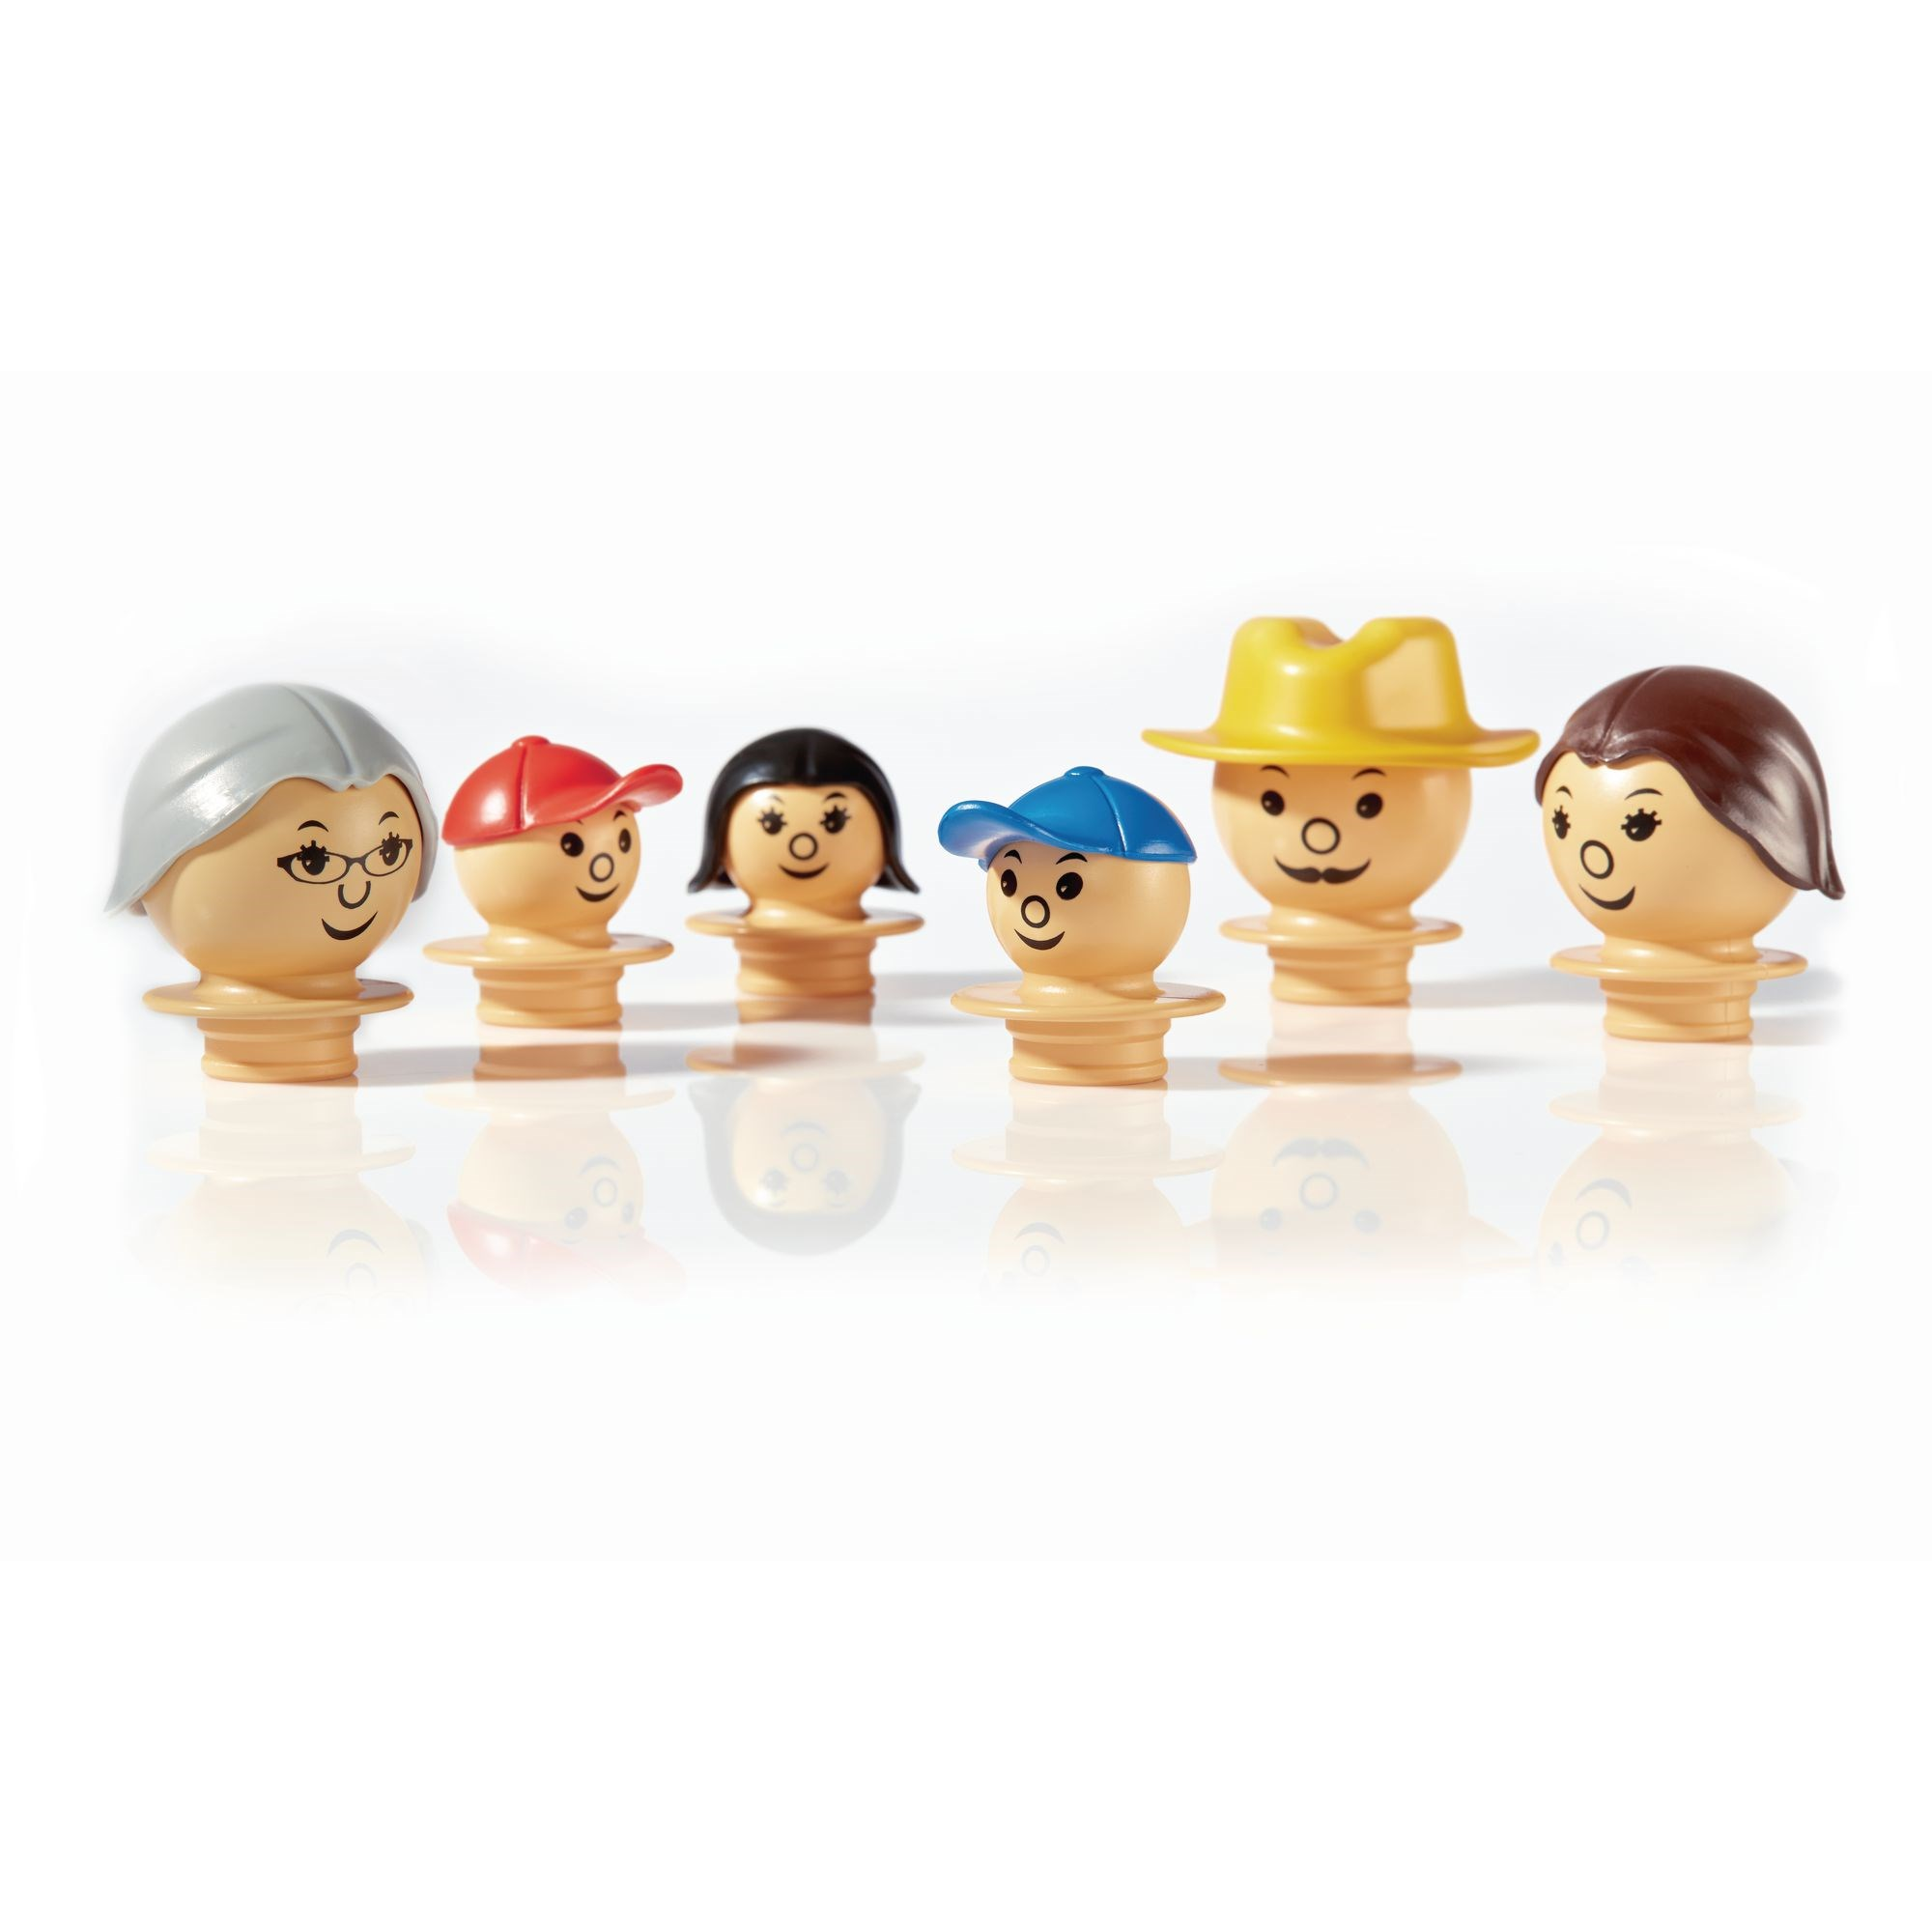 6 Mobilo Mixed Figures - White